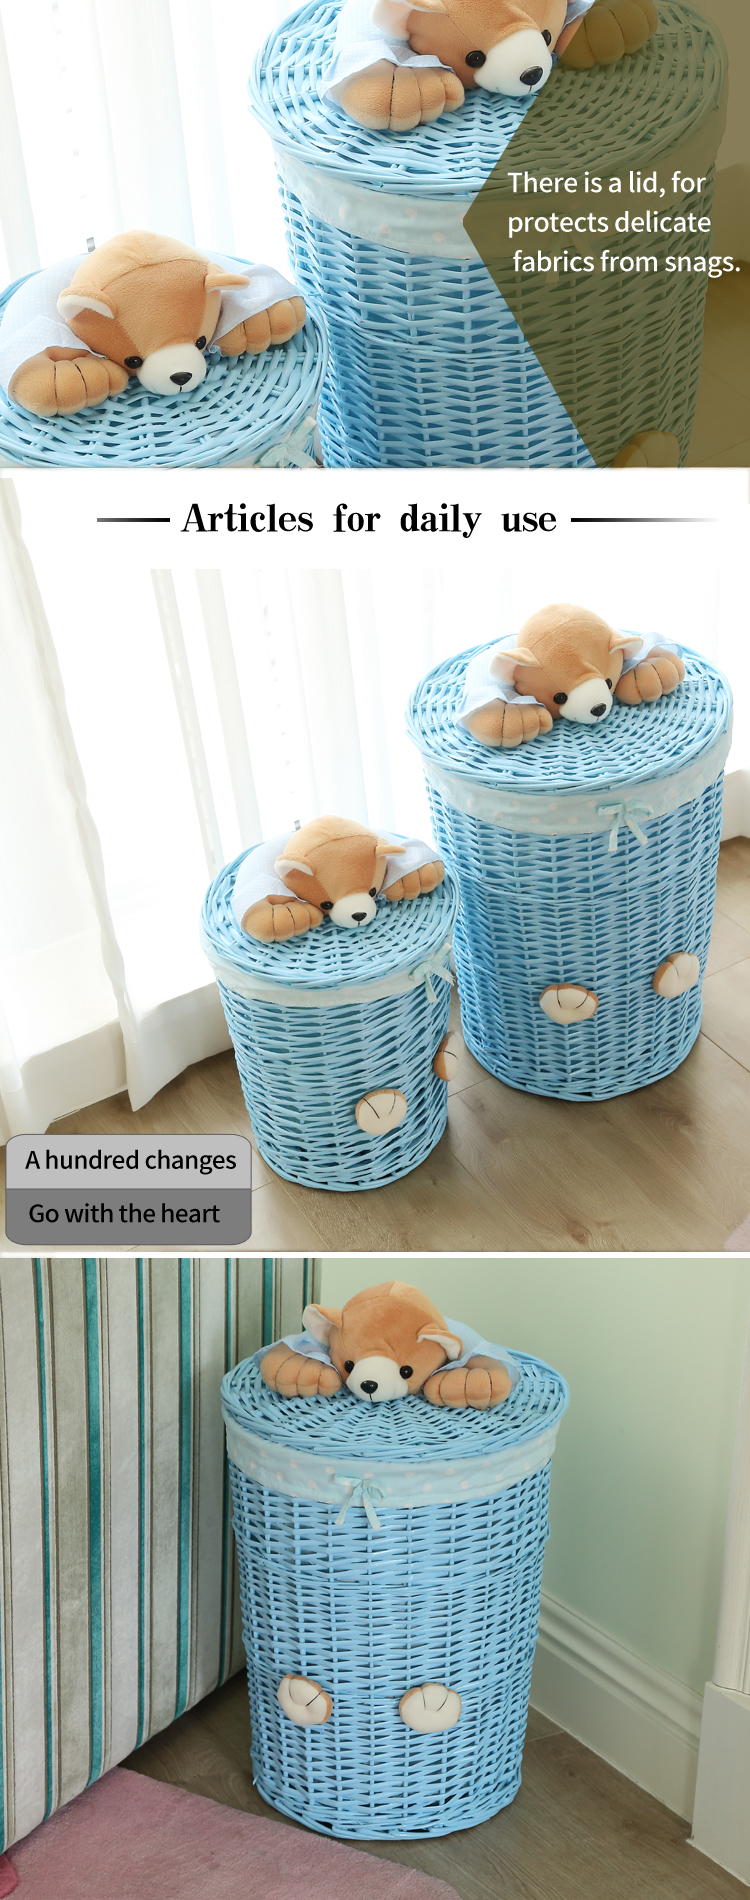 KINGWILLOW,  Clothing Use and Wicker Material storage basket with lid